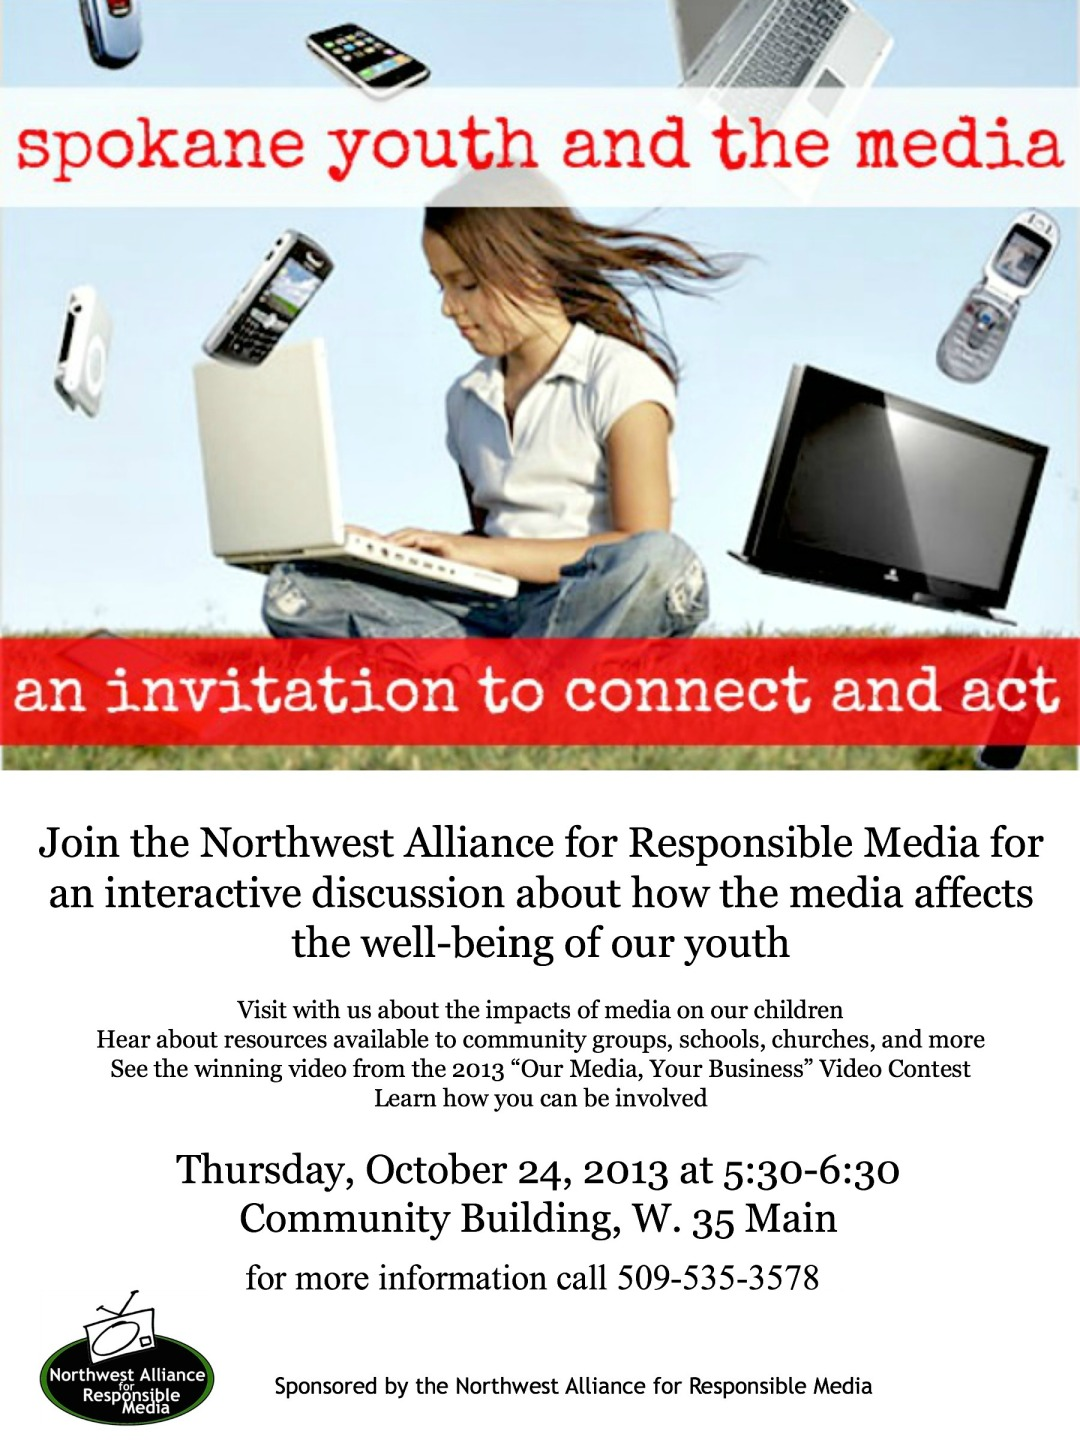 Spokane Youth and the Media - An Invitation to Connect and Act